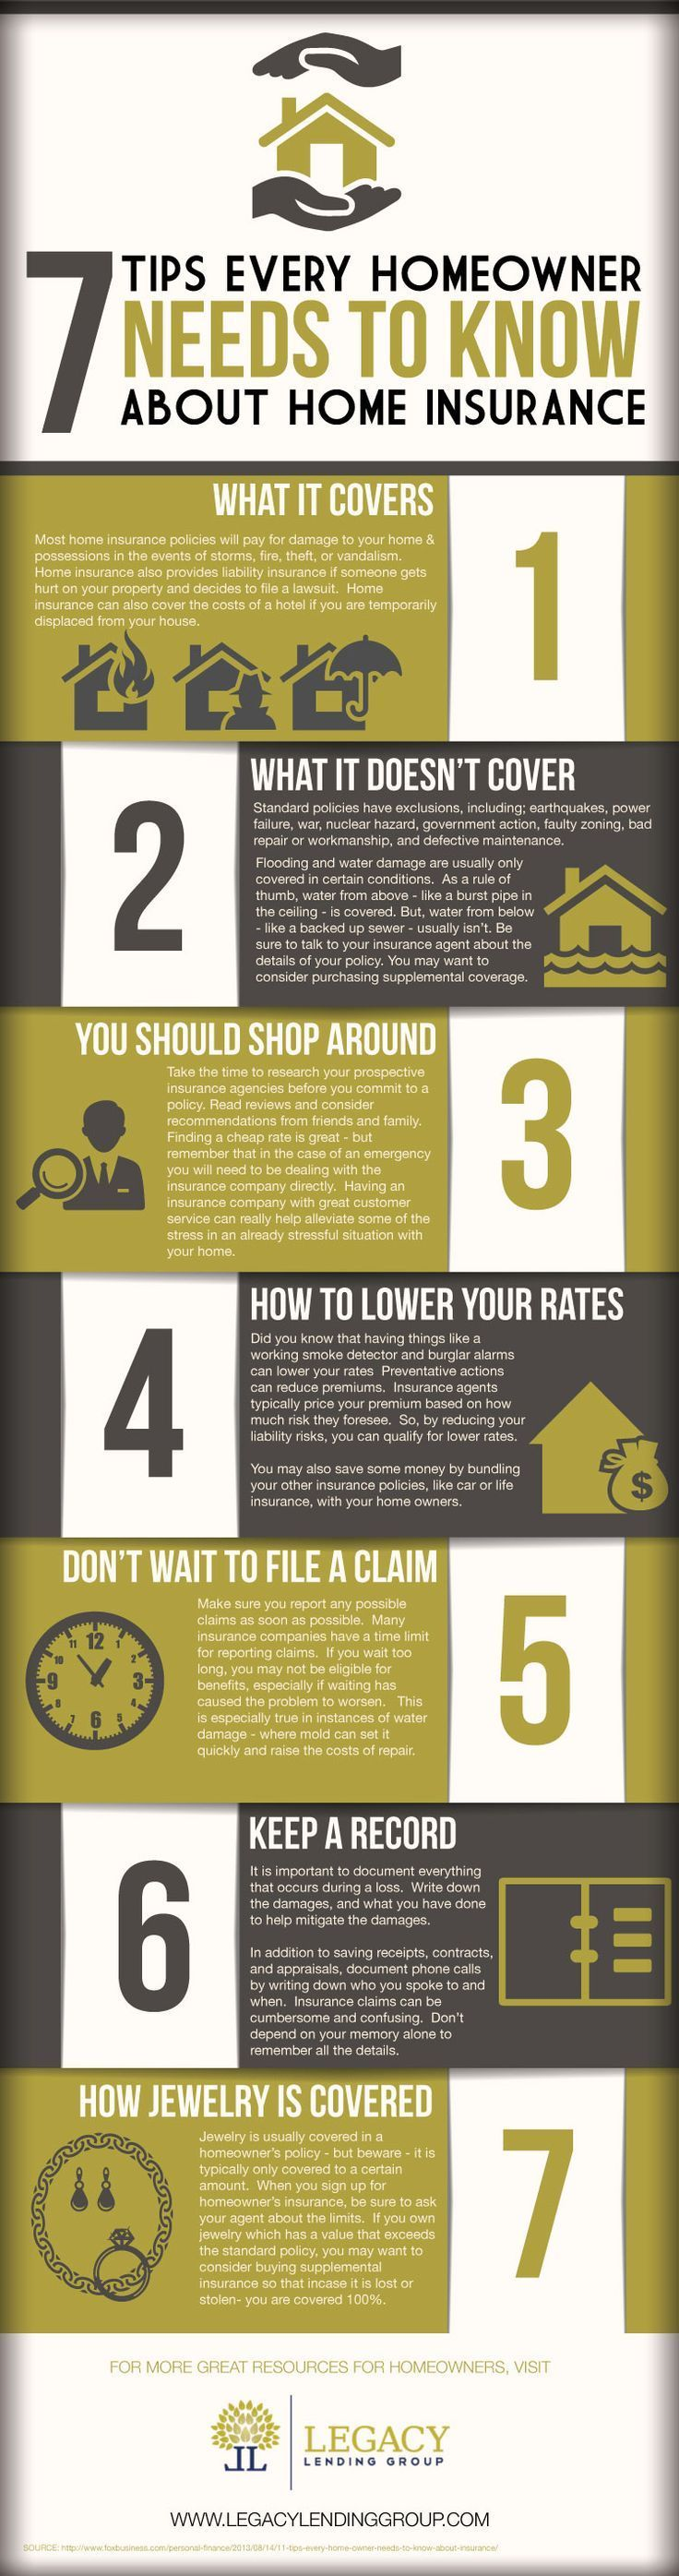 When every homeowner should know about property insurance